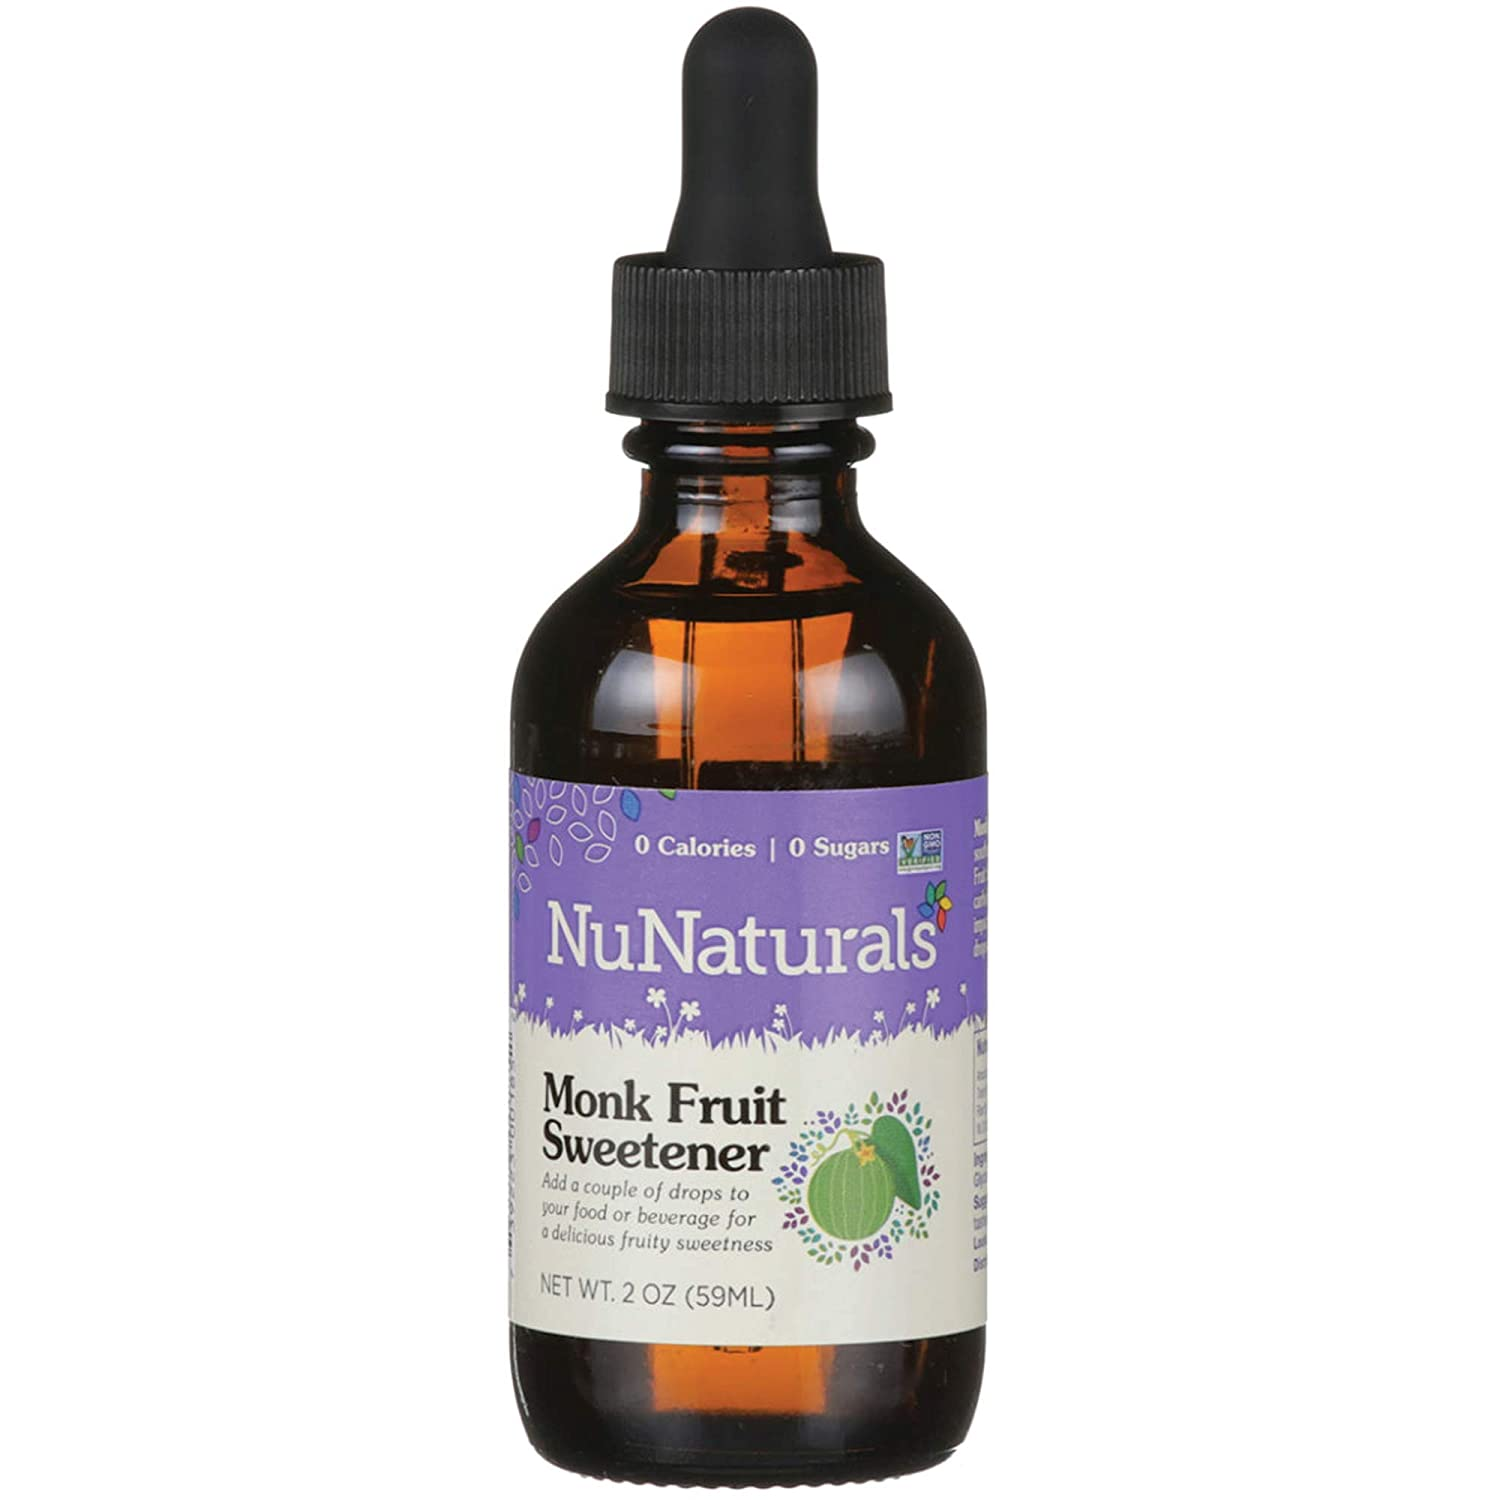 NuNaturals Monk Fruit Liquid Plant Based Sweetener, 2 Ounce